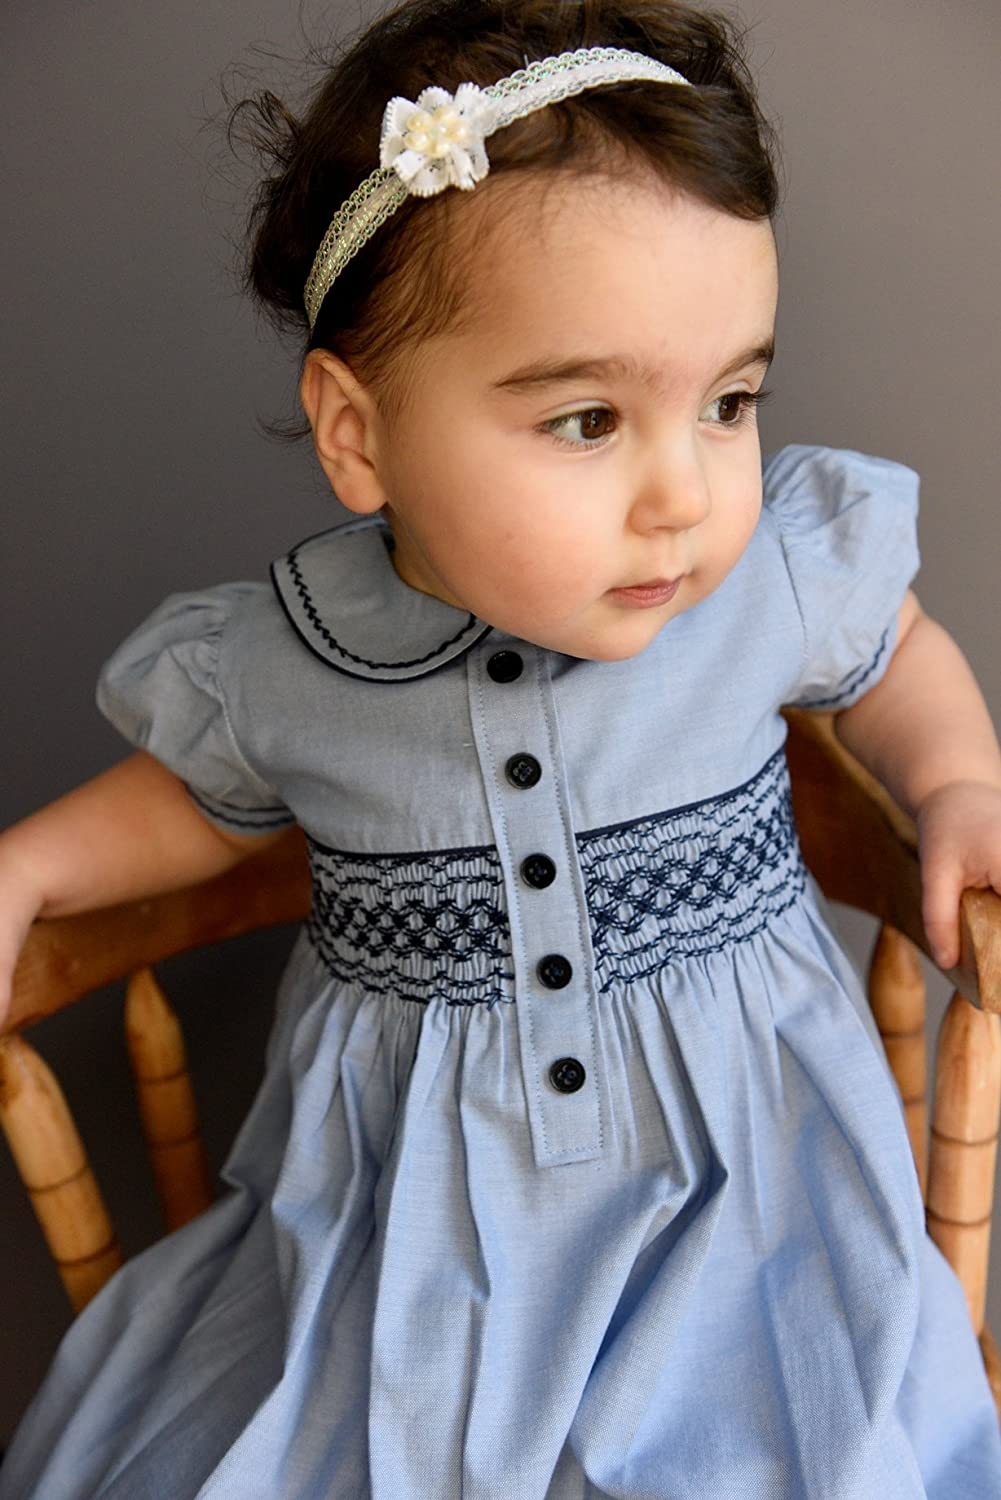 1940s Children's Clothing: Girls, Boys, Baby, Toddler Carriage Boutique's Baby Girls Light Blue Short Sleeve Dress $45.00 AT vintagedancer.com